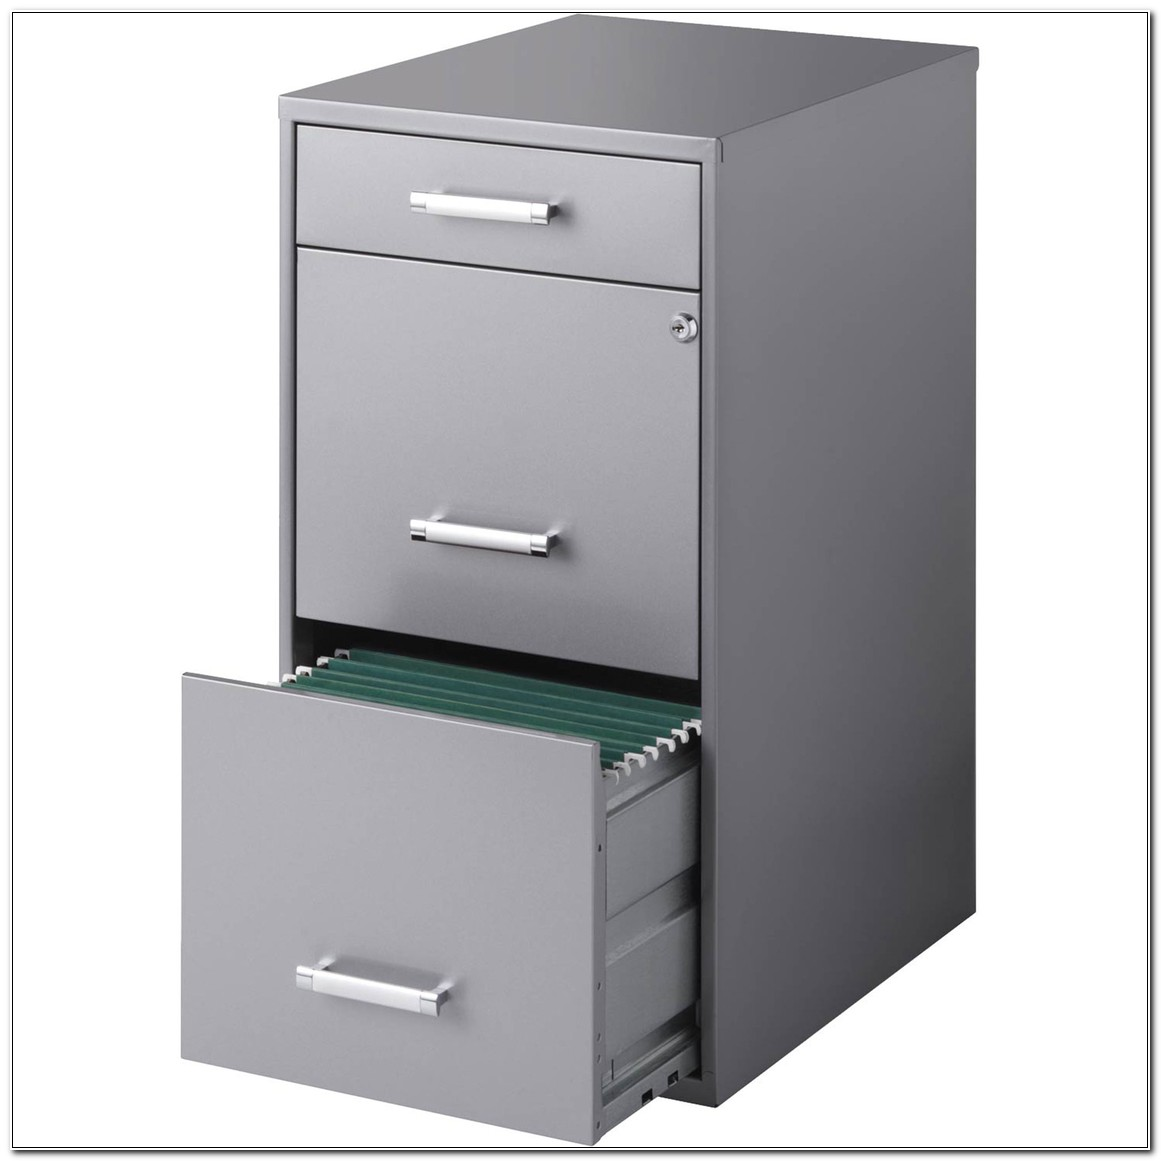 Space Solutions The Organizer File Cabinet